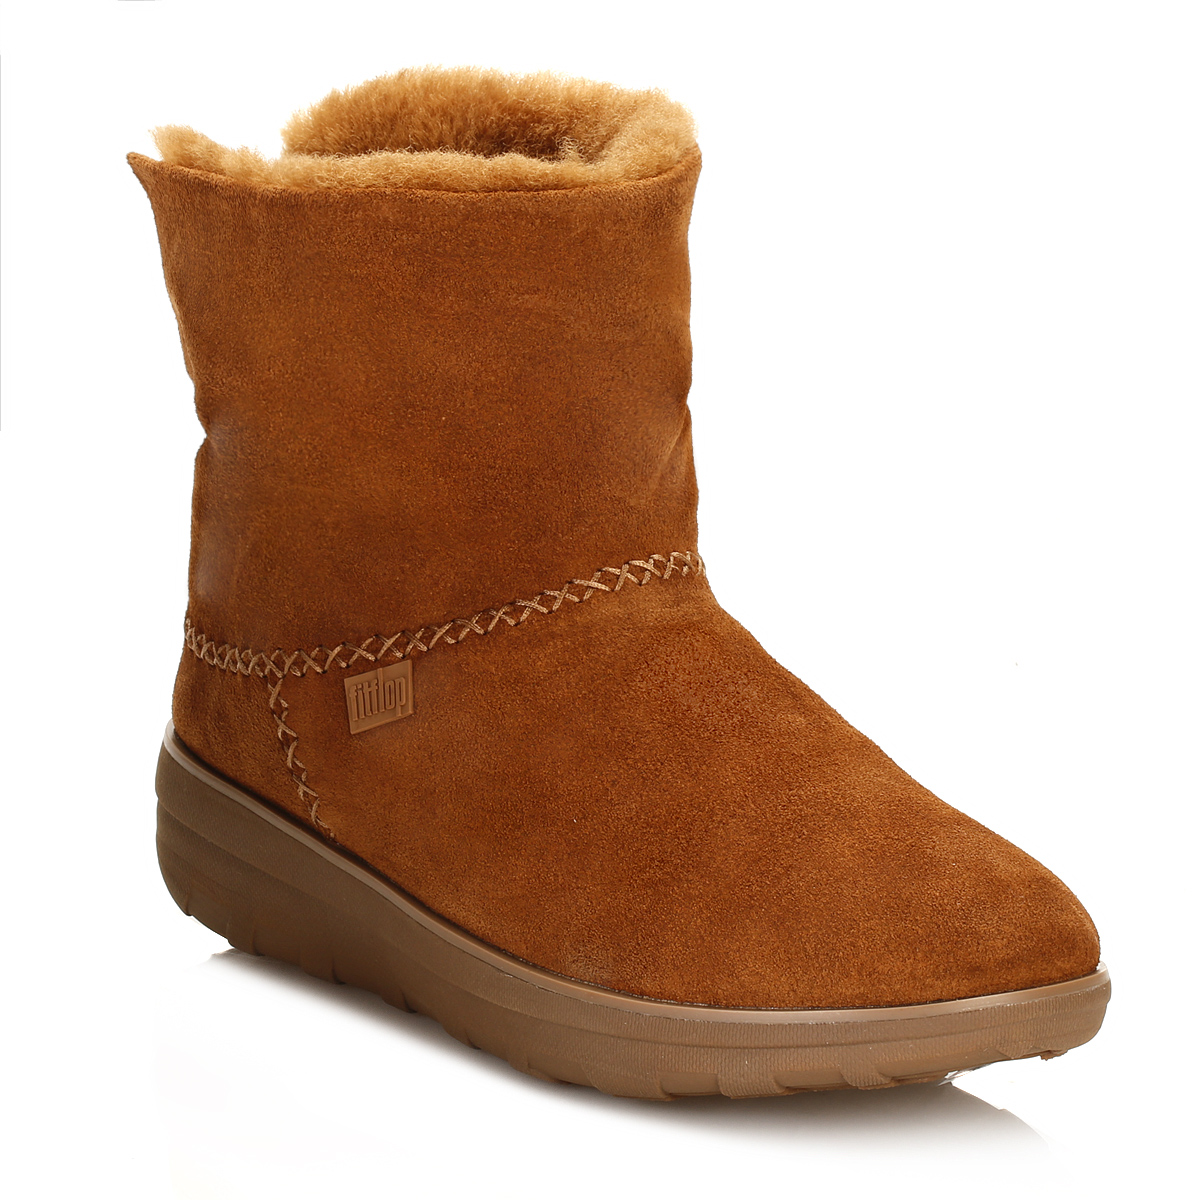 39ff182a2d708 FitFlop-Womens-Tan-Brown-Suede-Boots-Mukluk-Shorty-